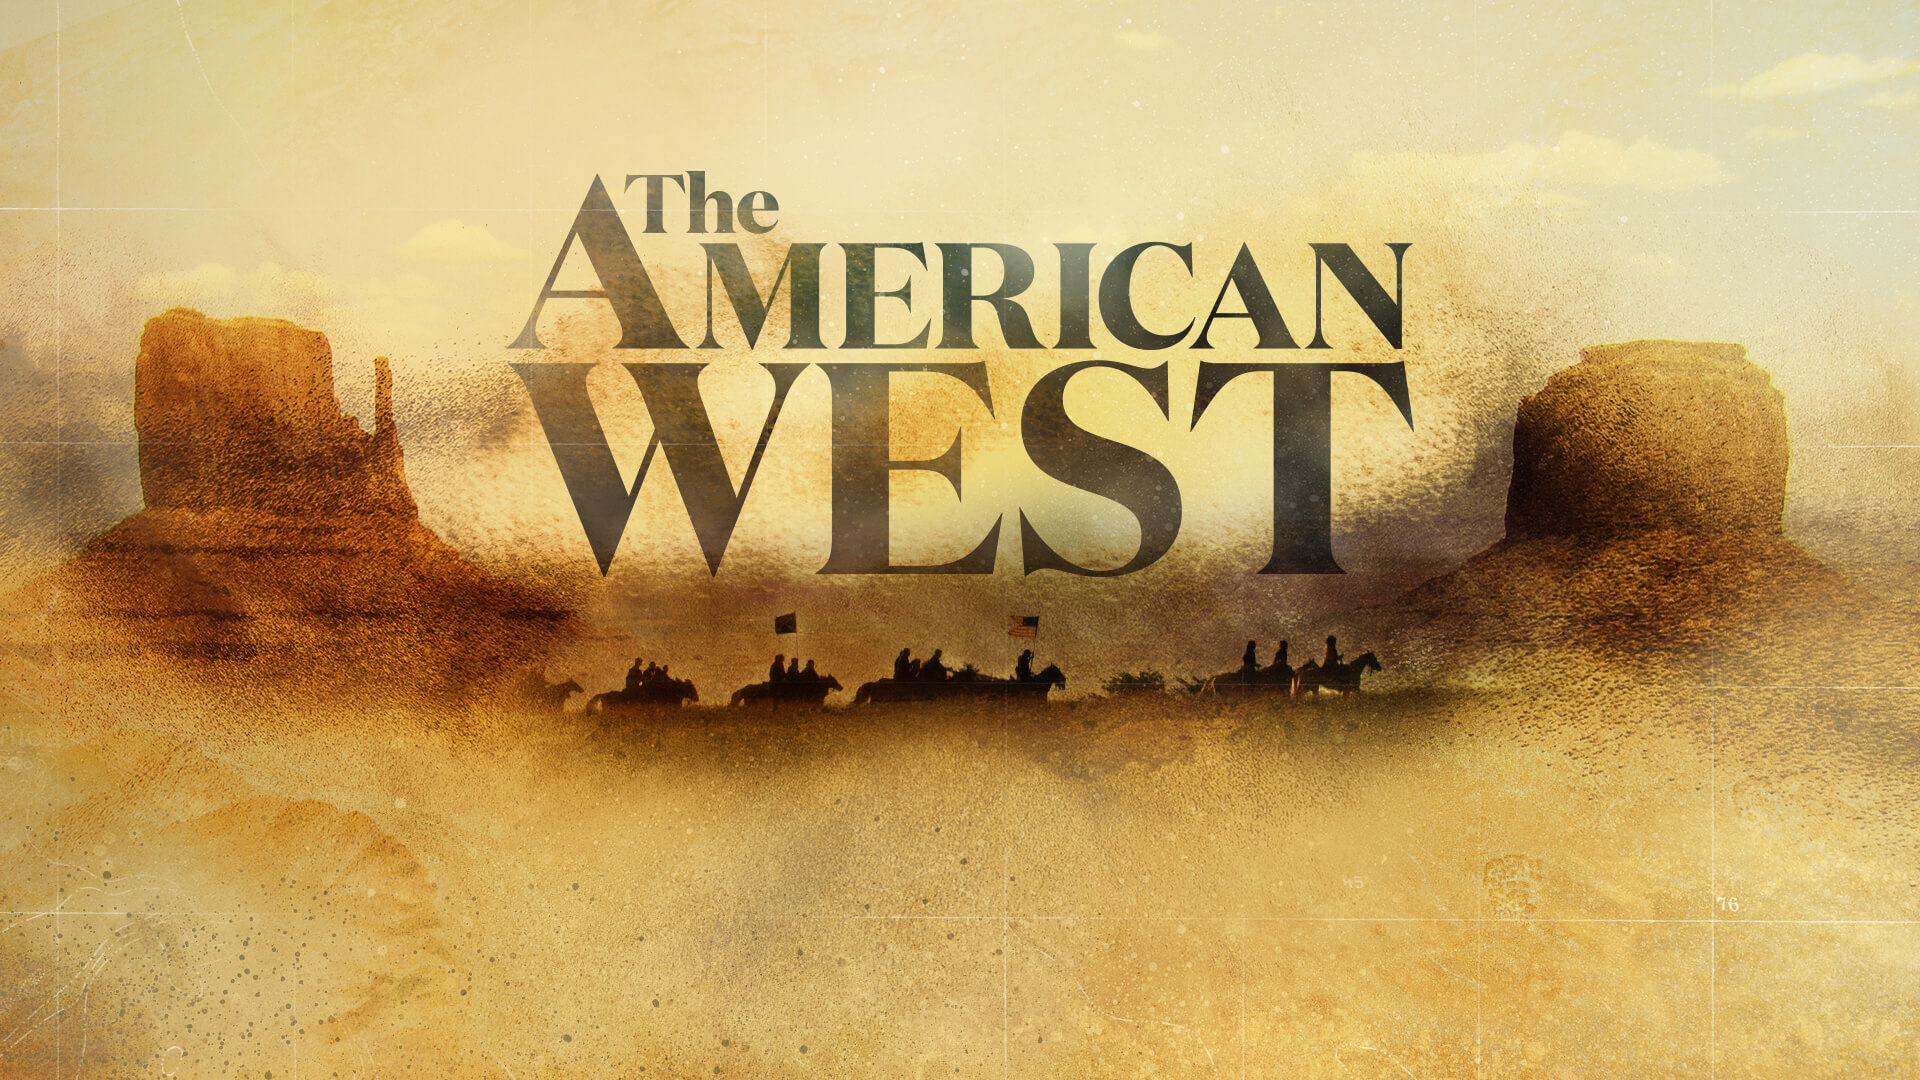 151030_AMC_THEWEST_TITLE_N_SML.jpg